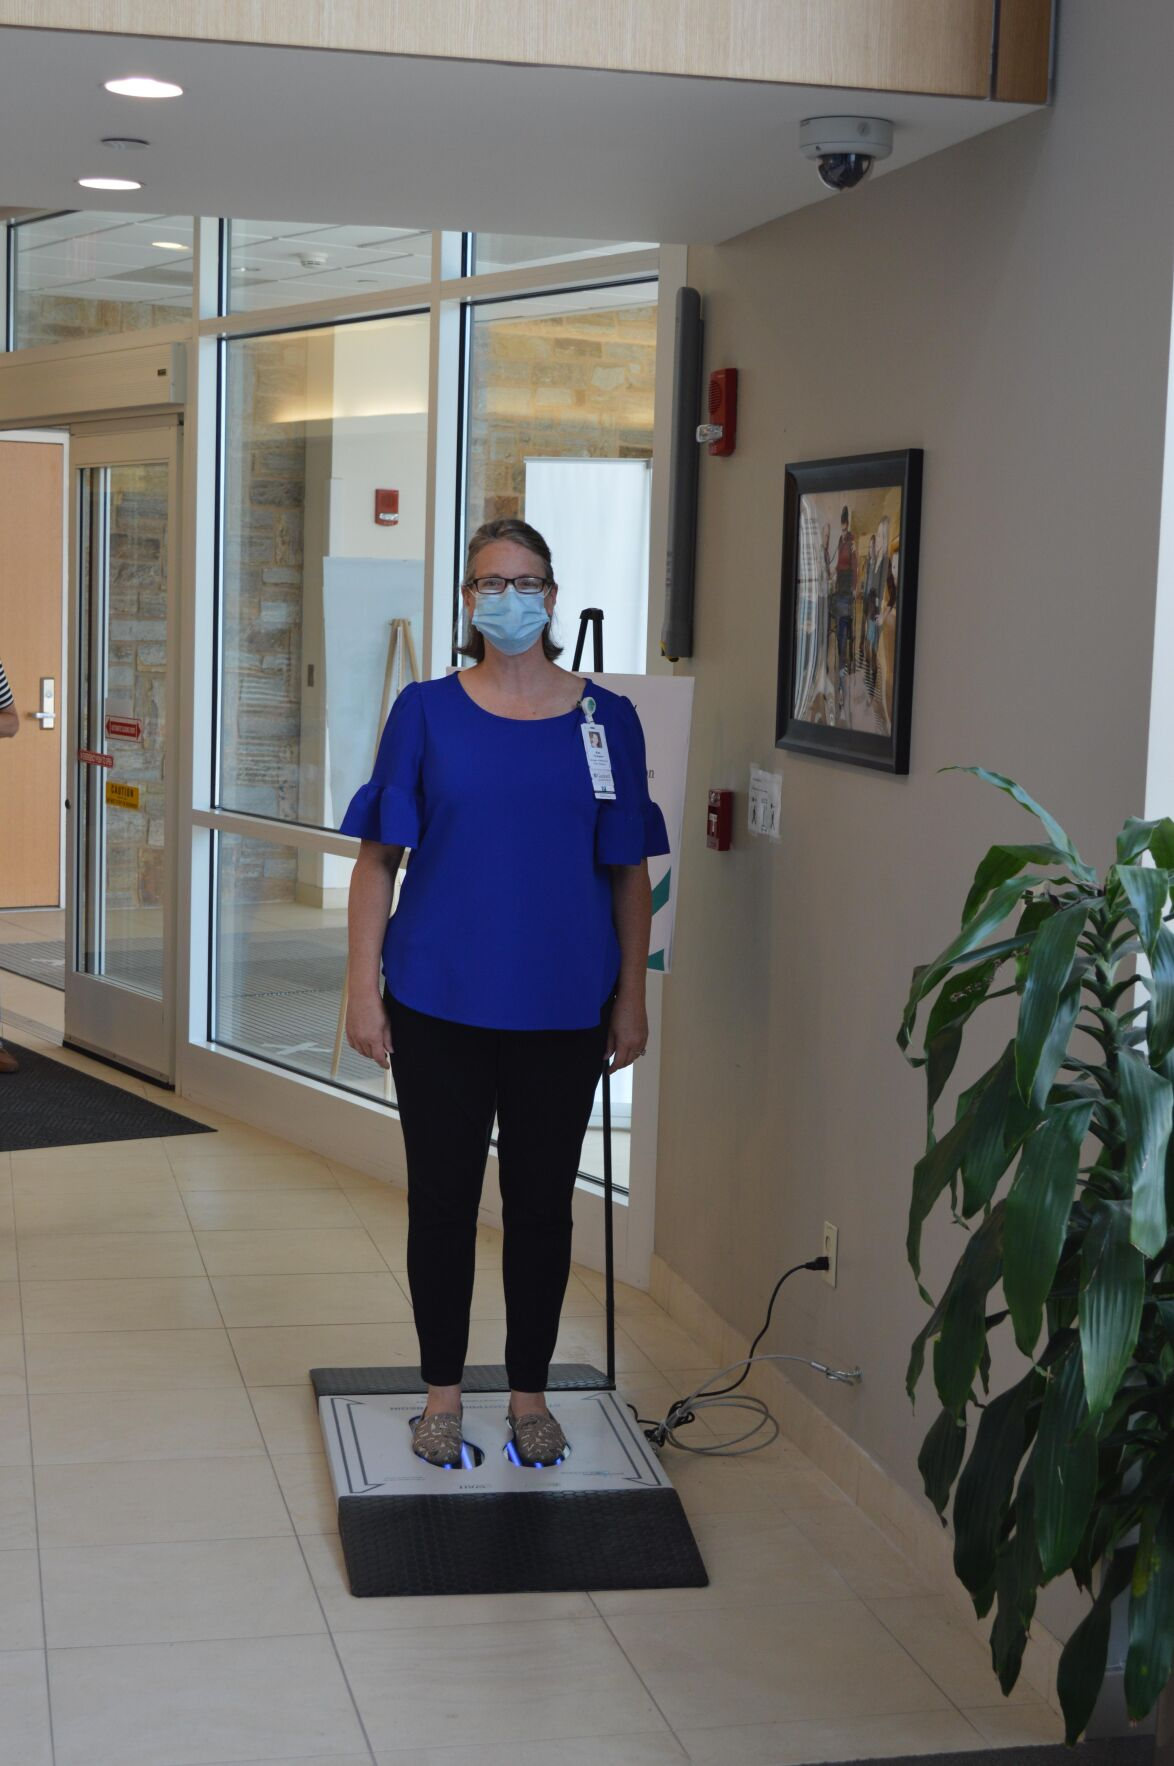 Wallingford health care provider begins using new shoe disinfection technology amid pandemic